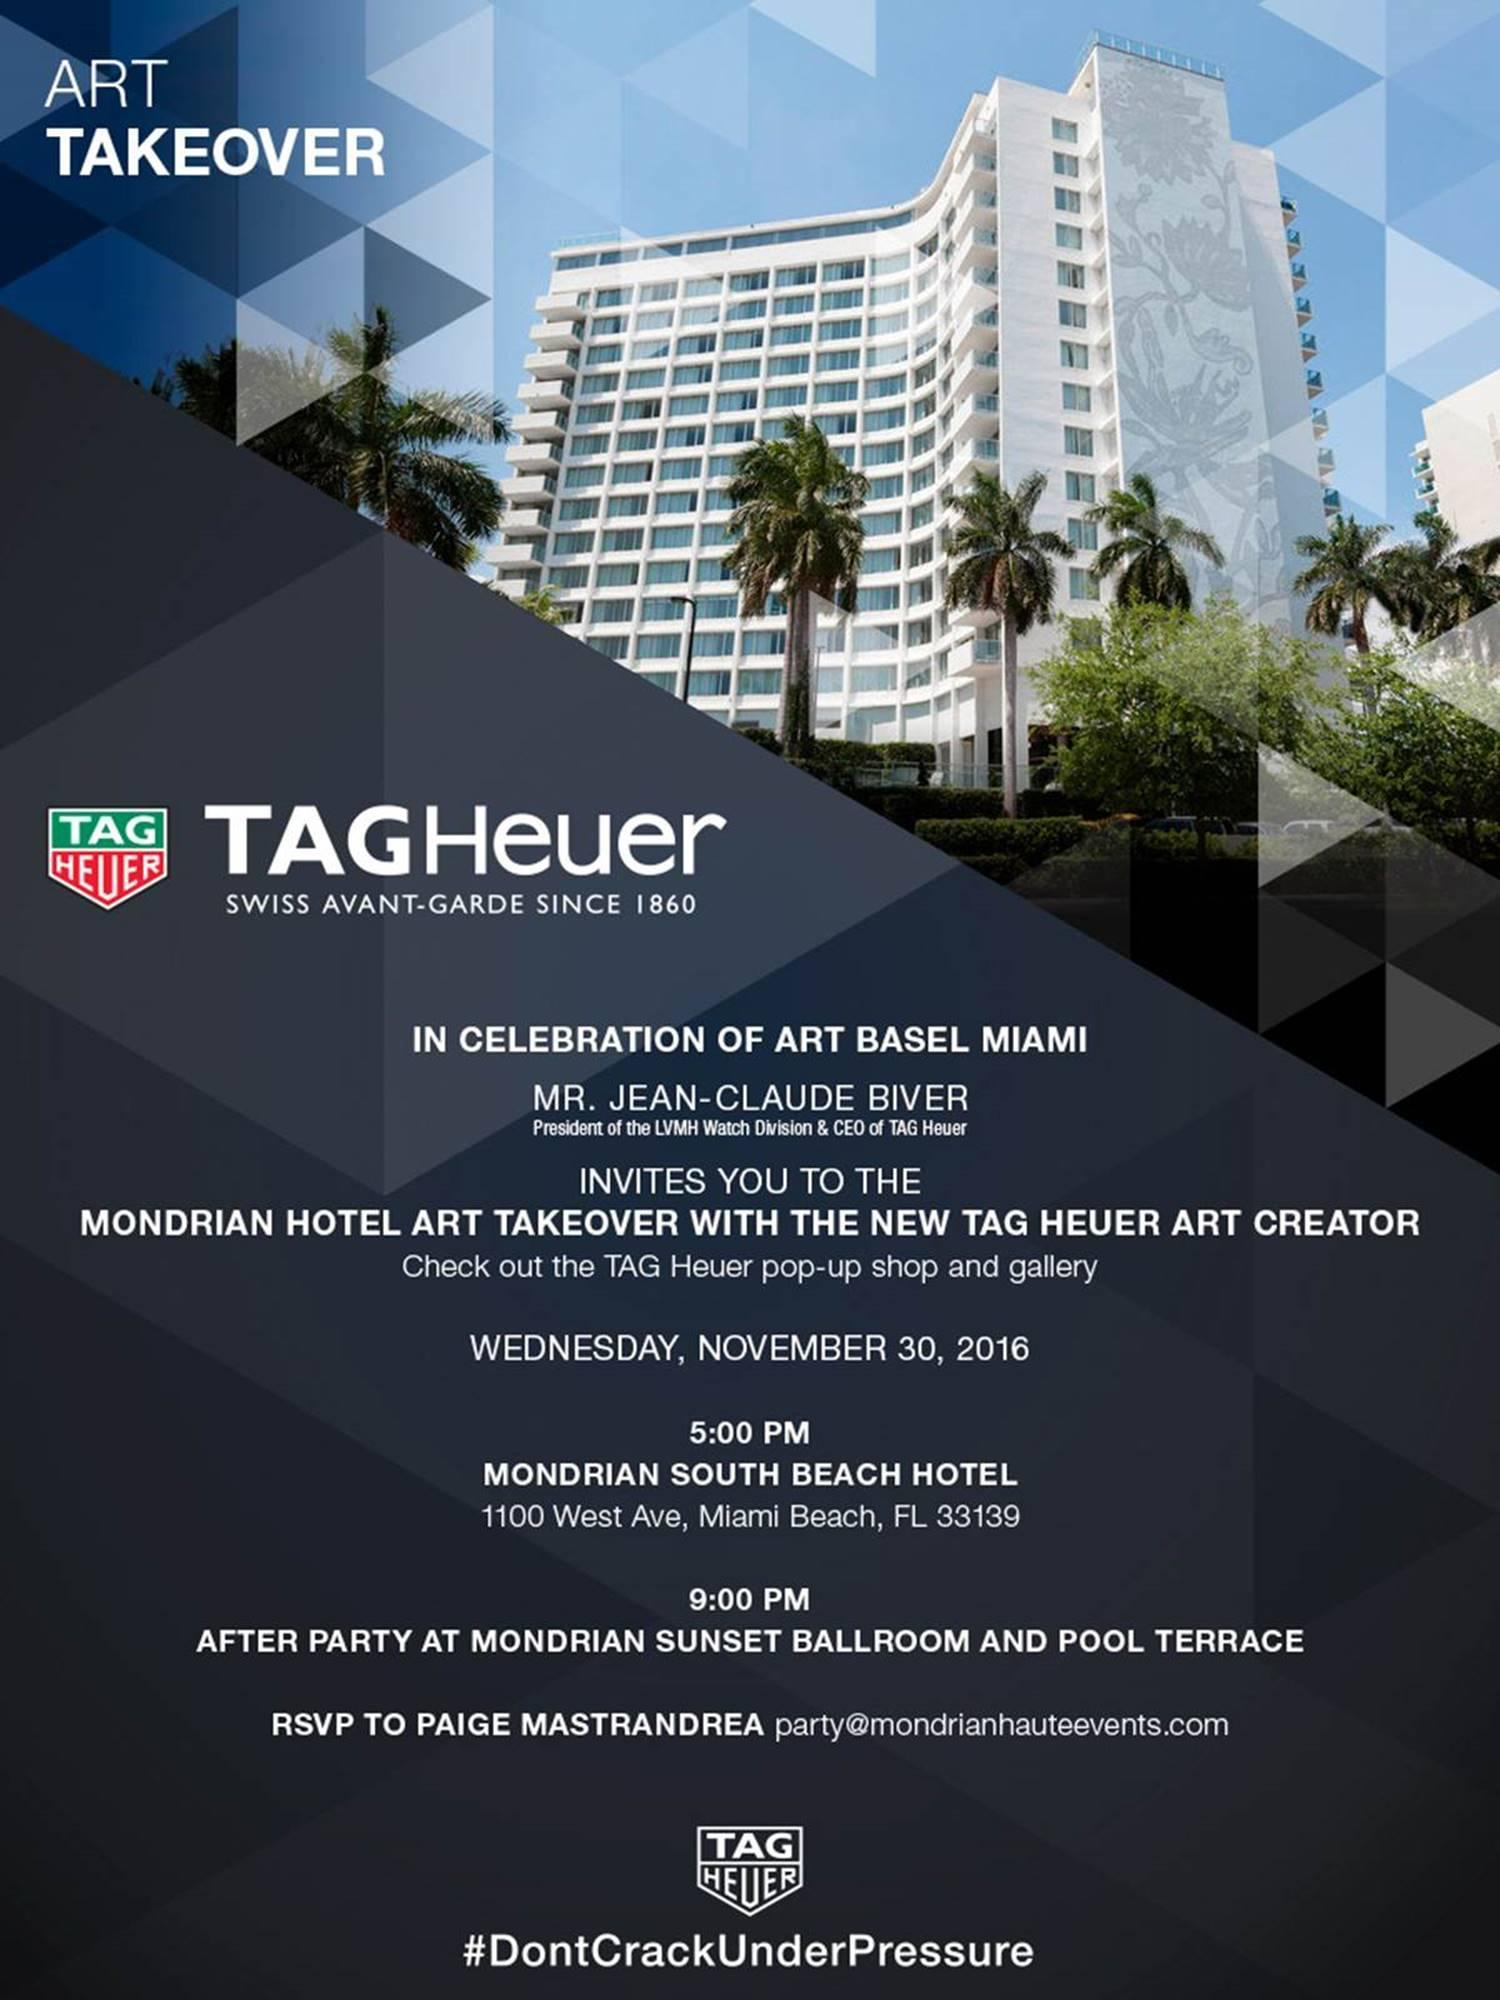 Alec Monopoly Art Takeover X TAG HEUER At Mondrian Hotel